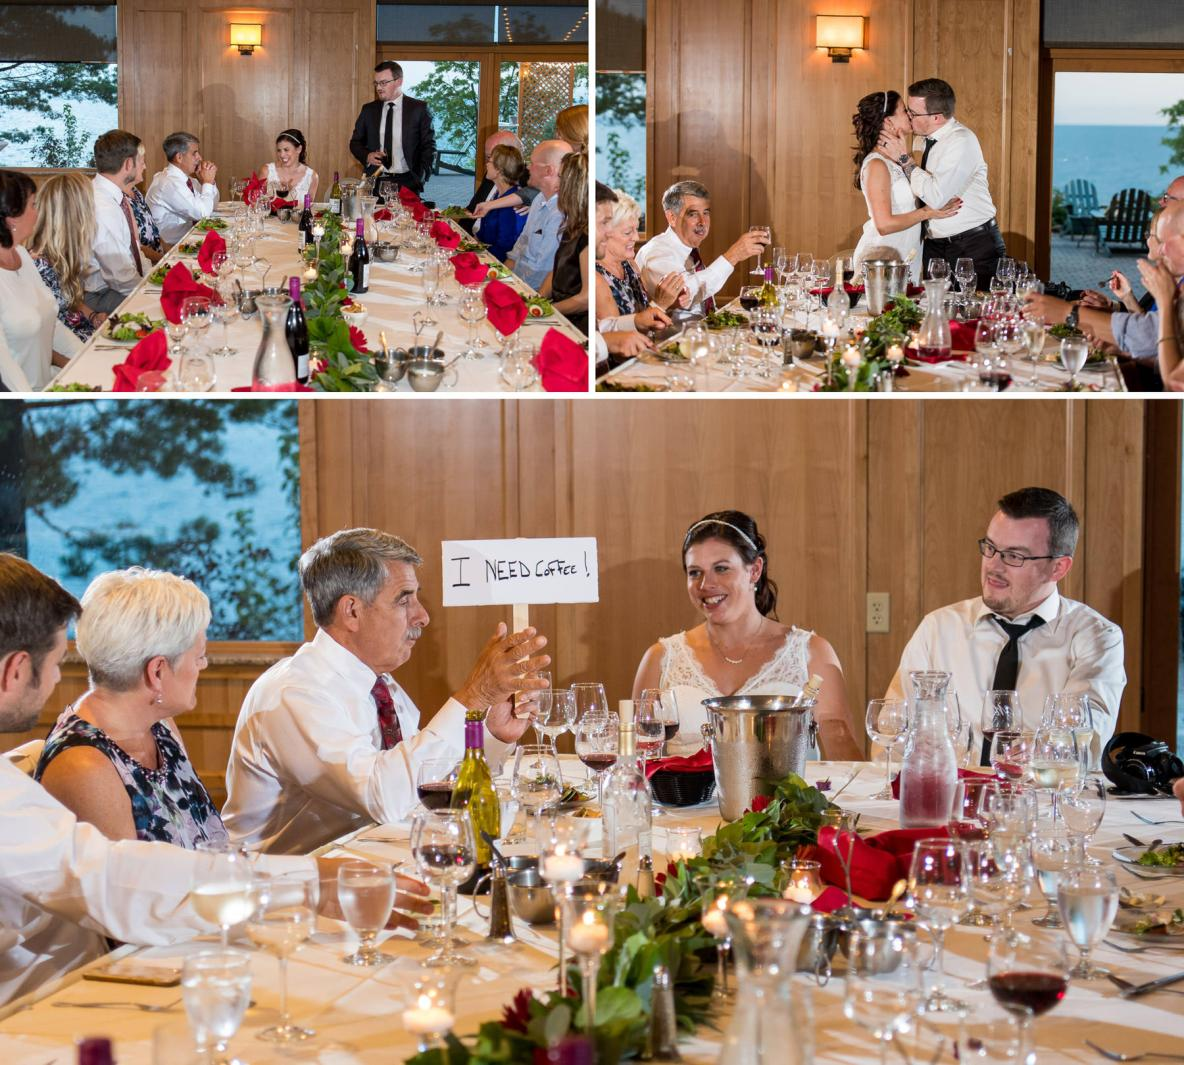 Photos of the reception dinner at Grand Superior Lodge in Two Harbors, MN.